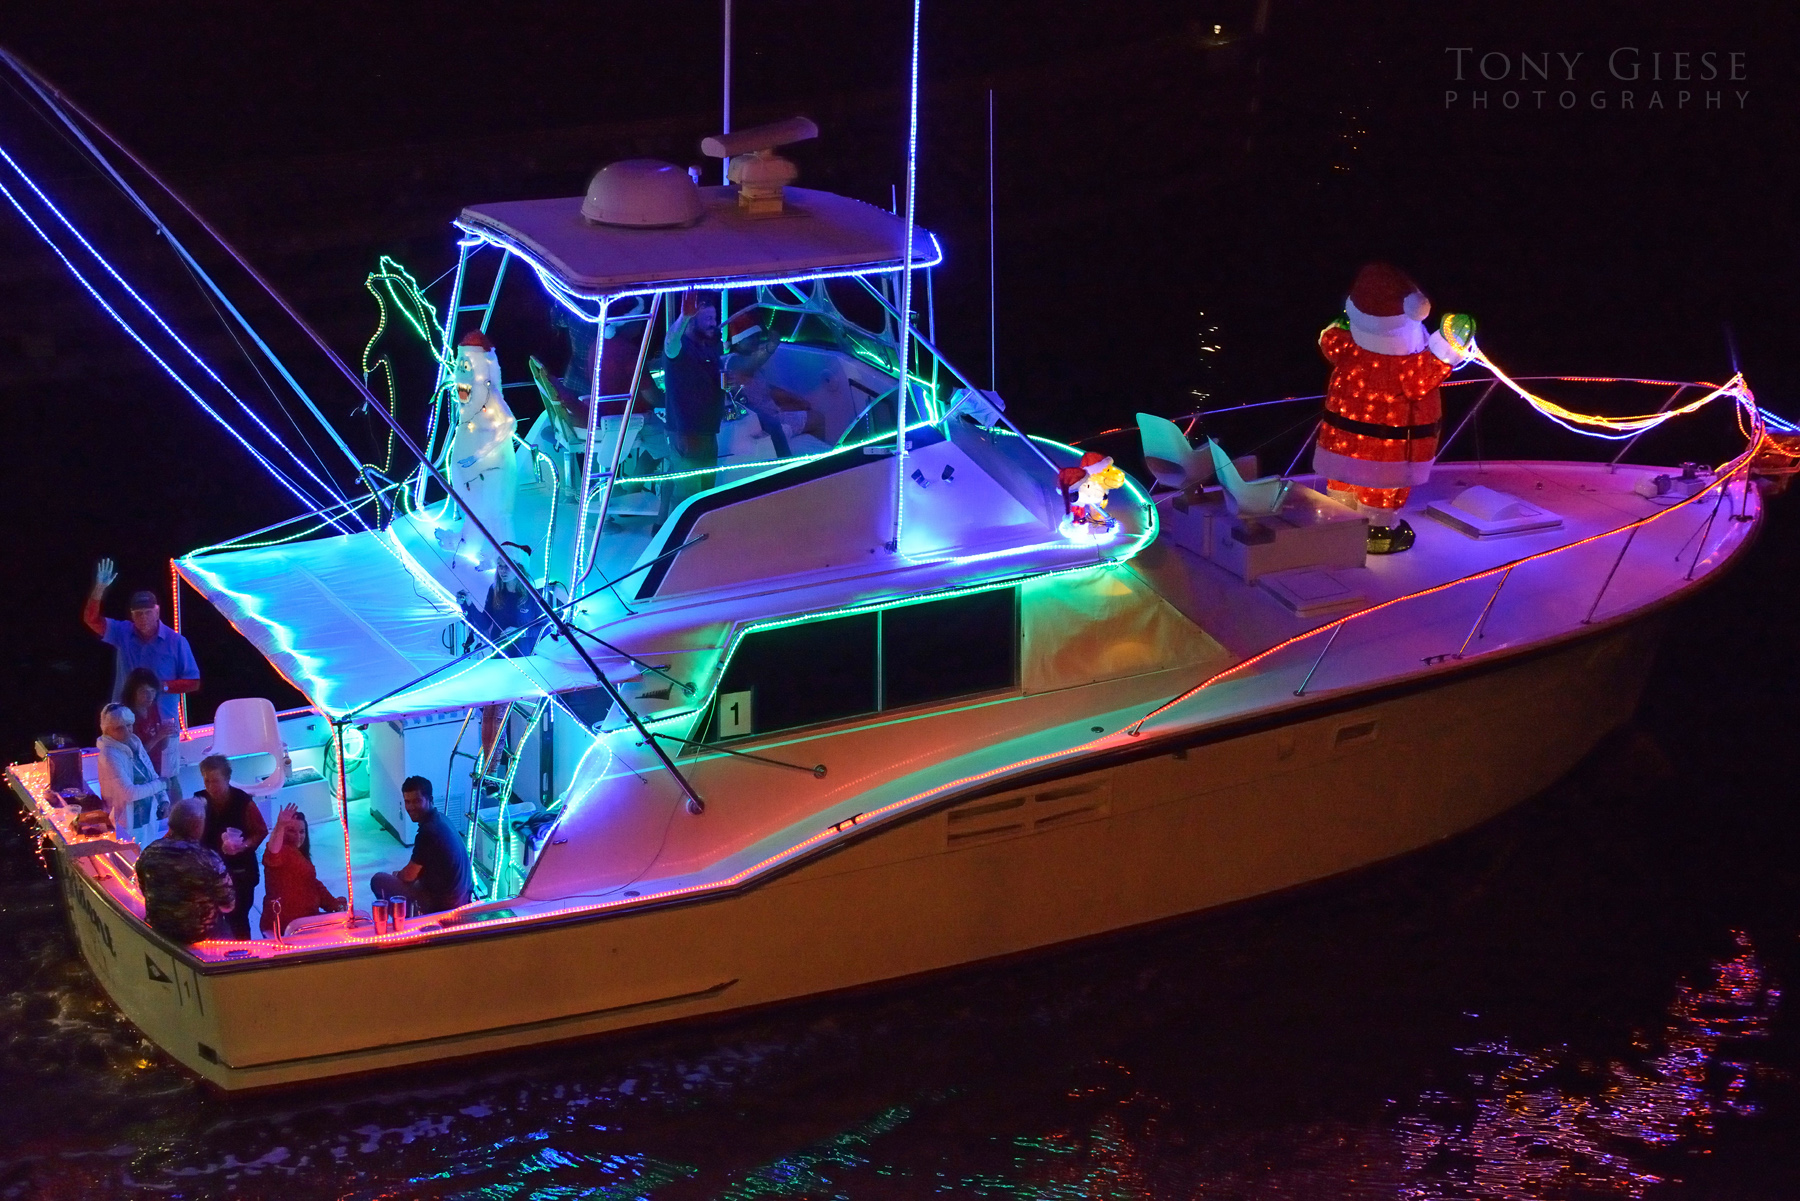 Partying with santa on the brilliantly decorated boat parading down the Halifax River, Daytona Beach, Florida.